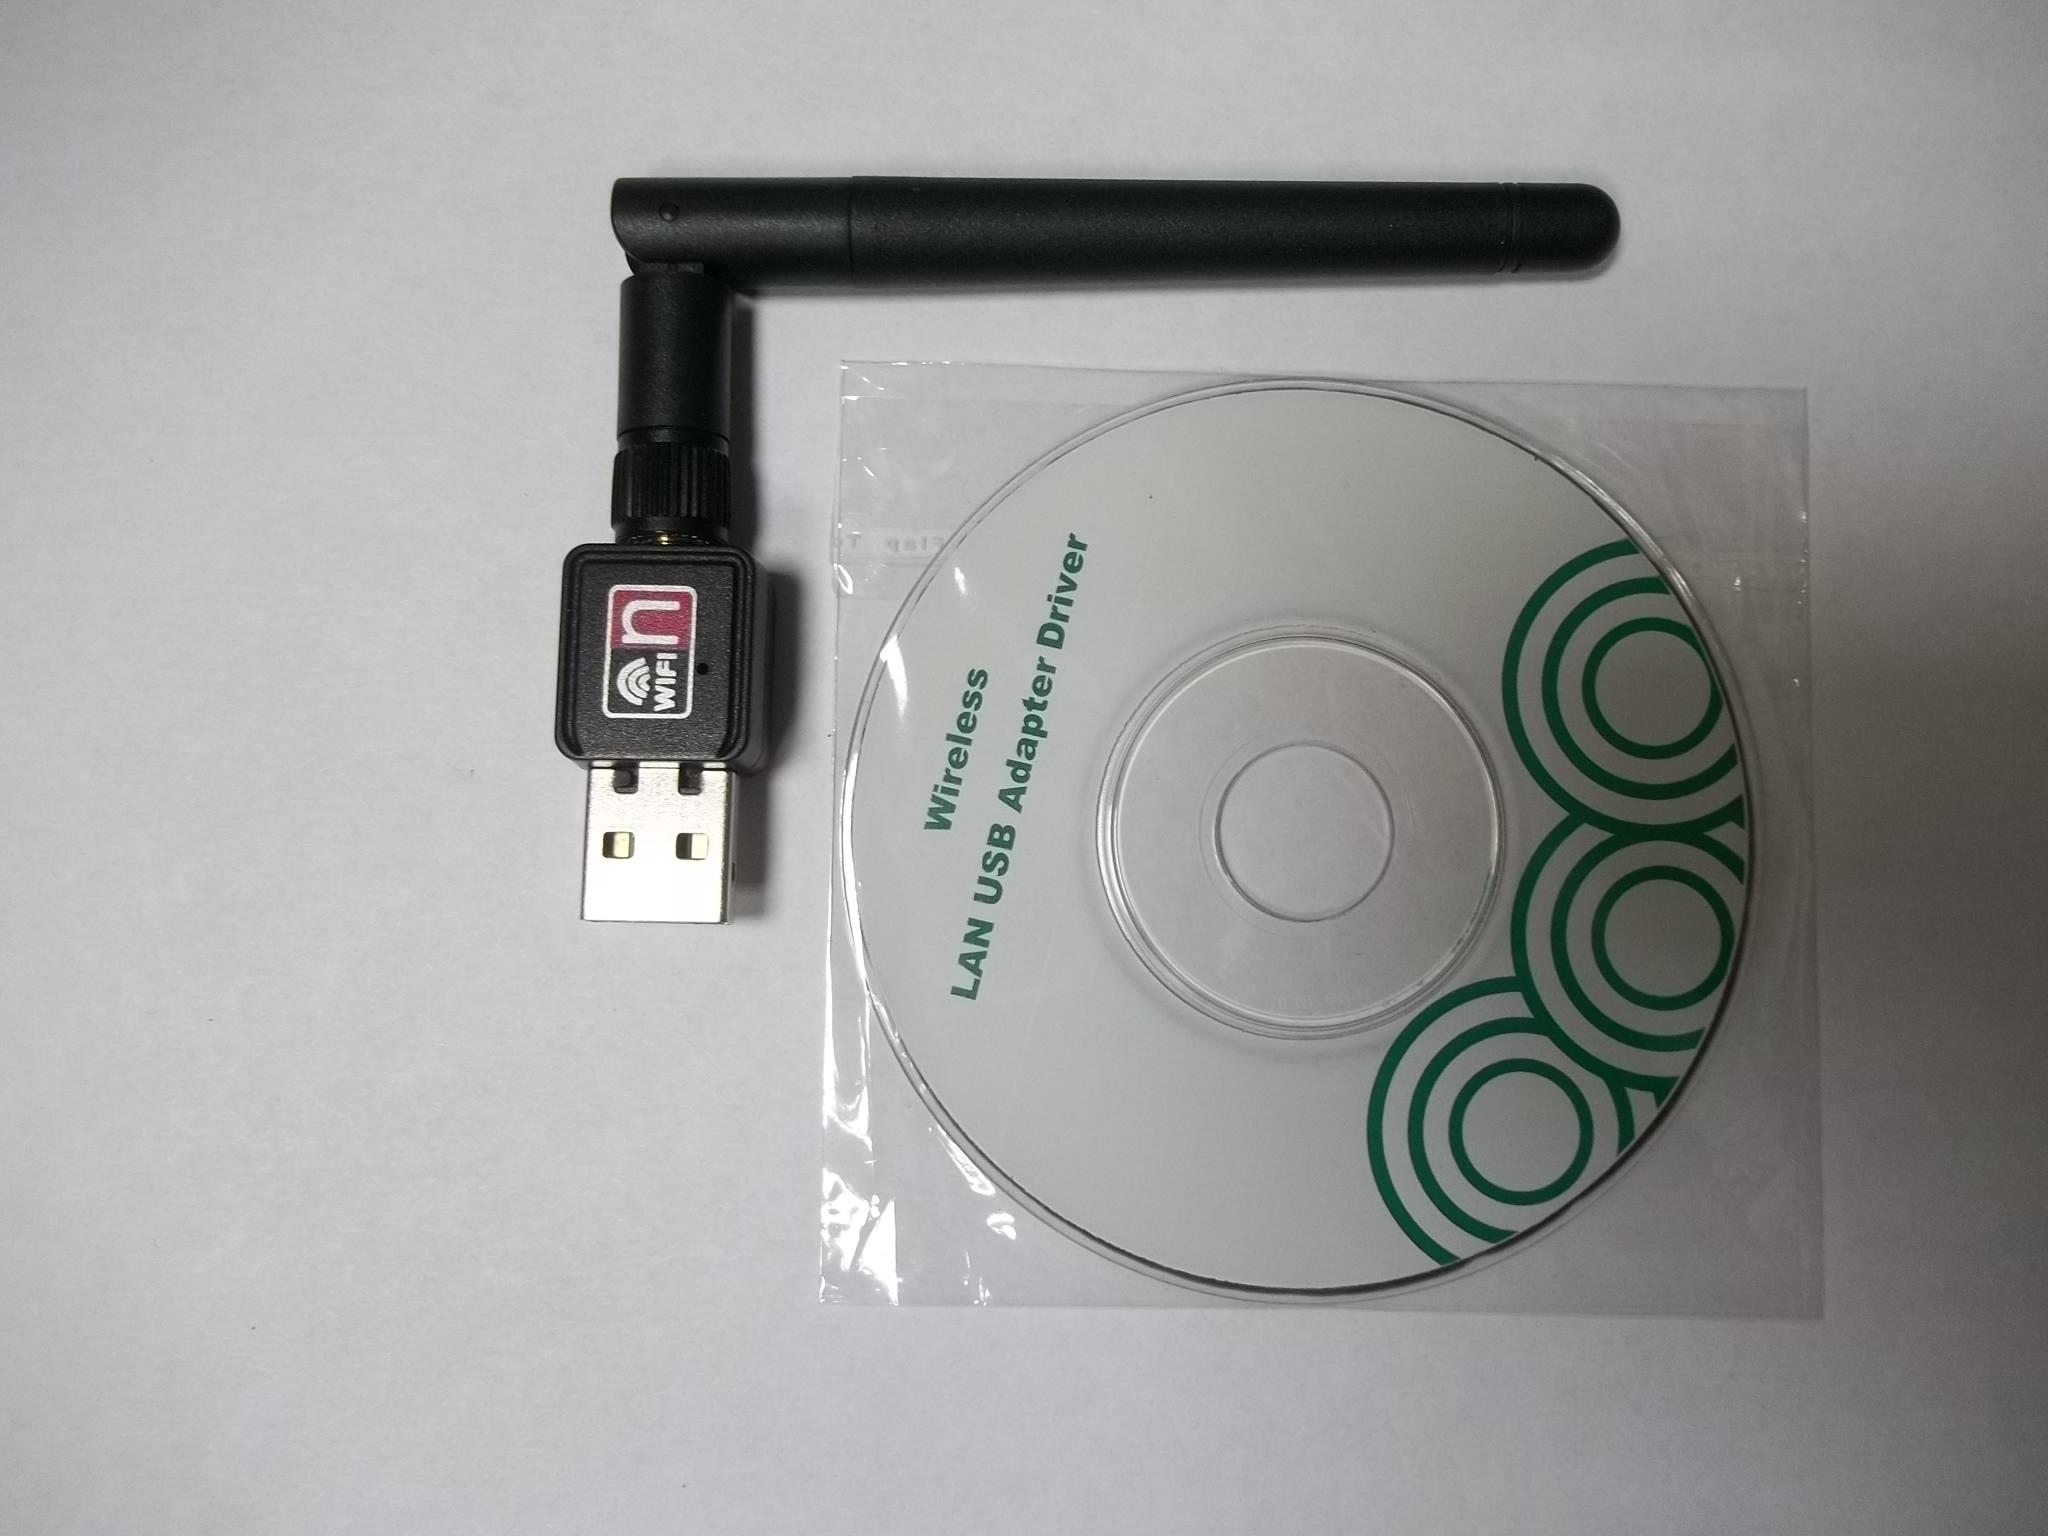 Realtek 8188eus 150mbps mini usb wifi adapter wireless network.